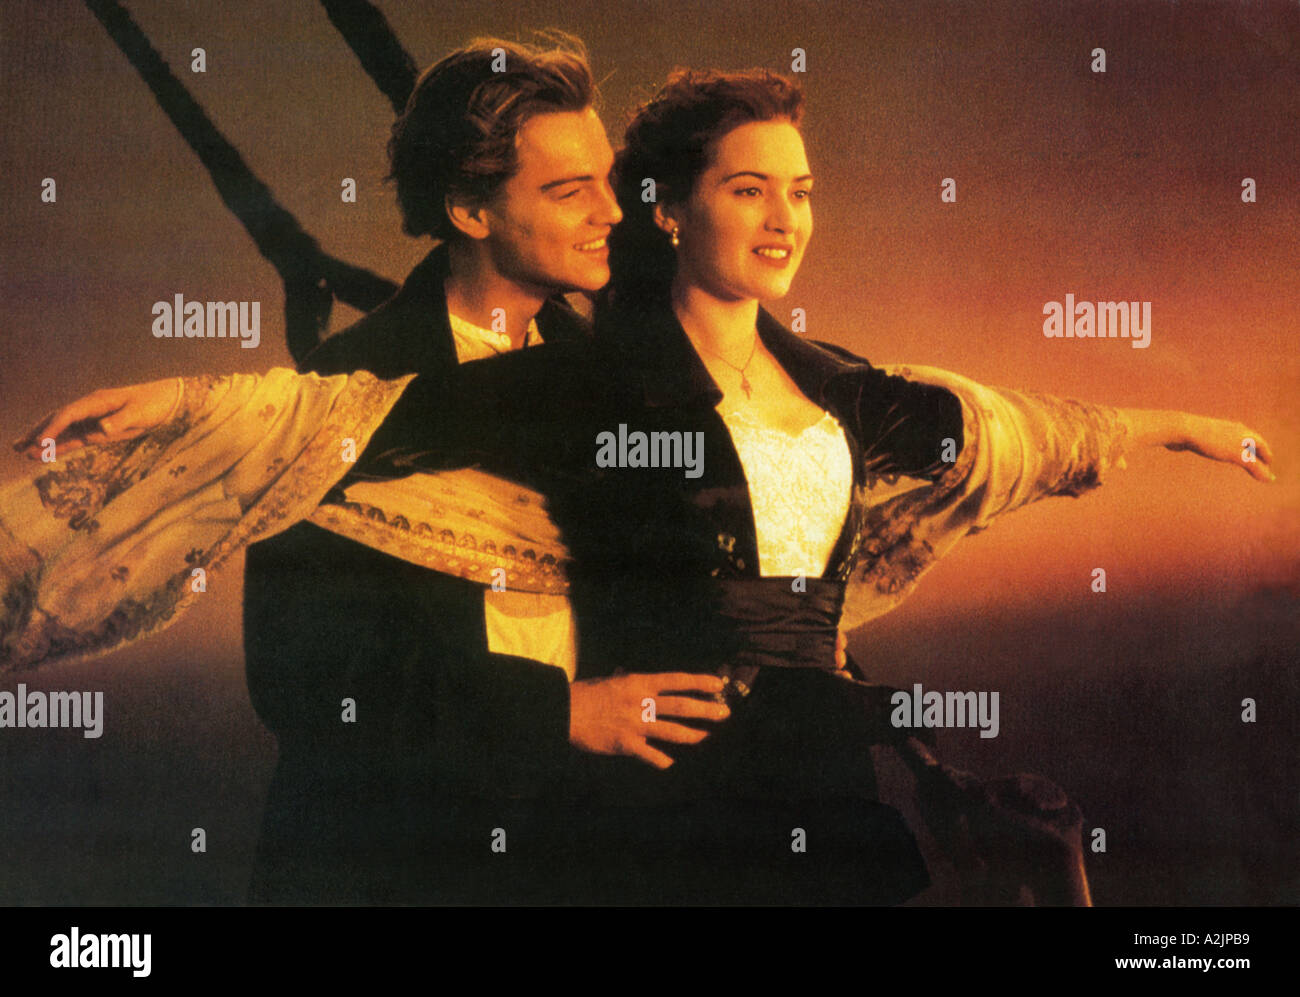 TITANIC Oscar winning 1997 film starring Leonardo DiCaprio and Kate Winslet - Stock Image